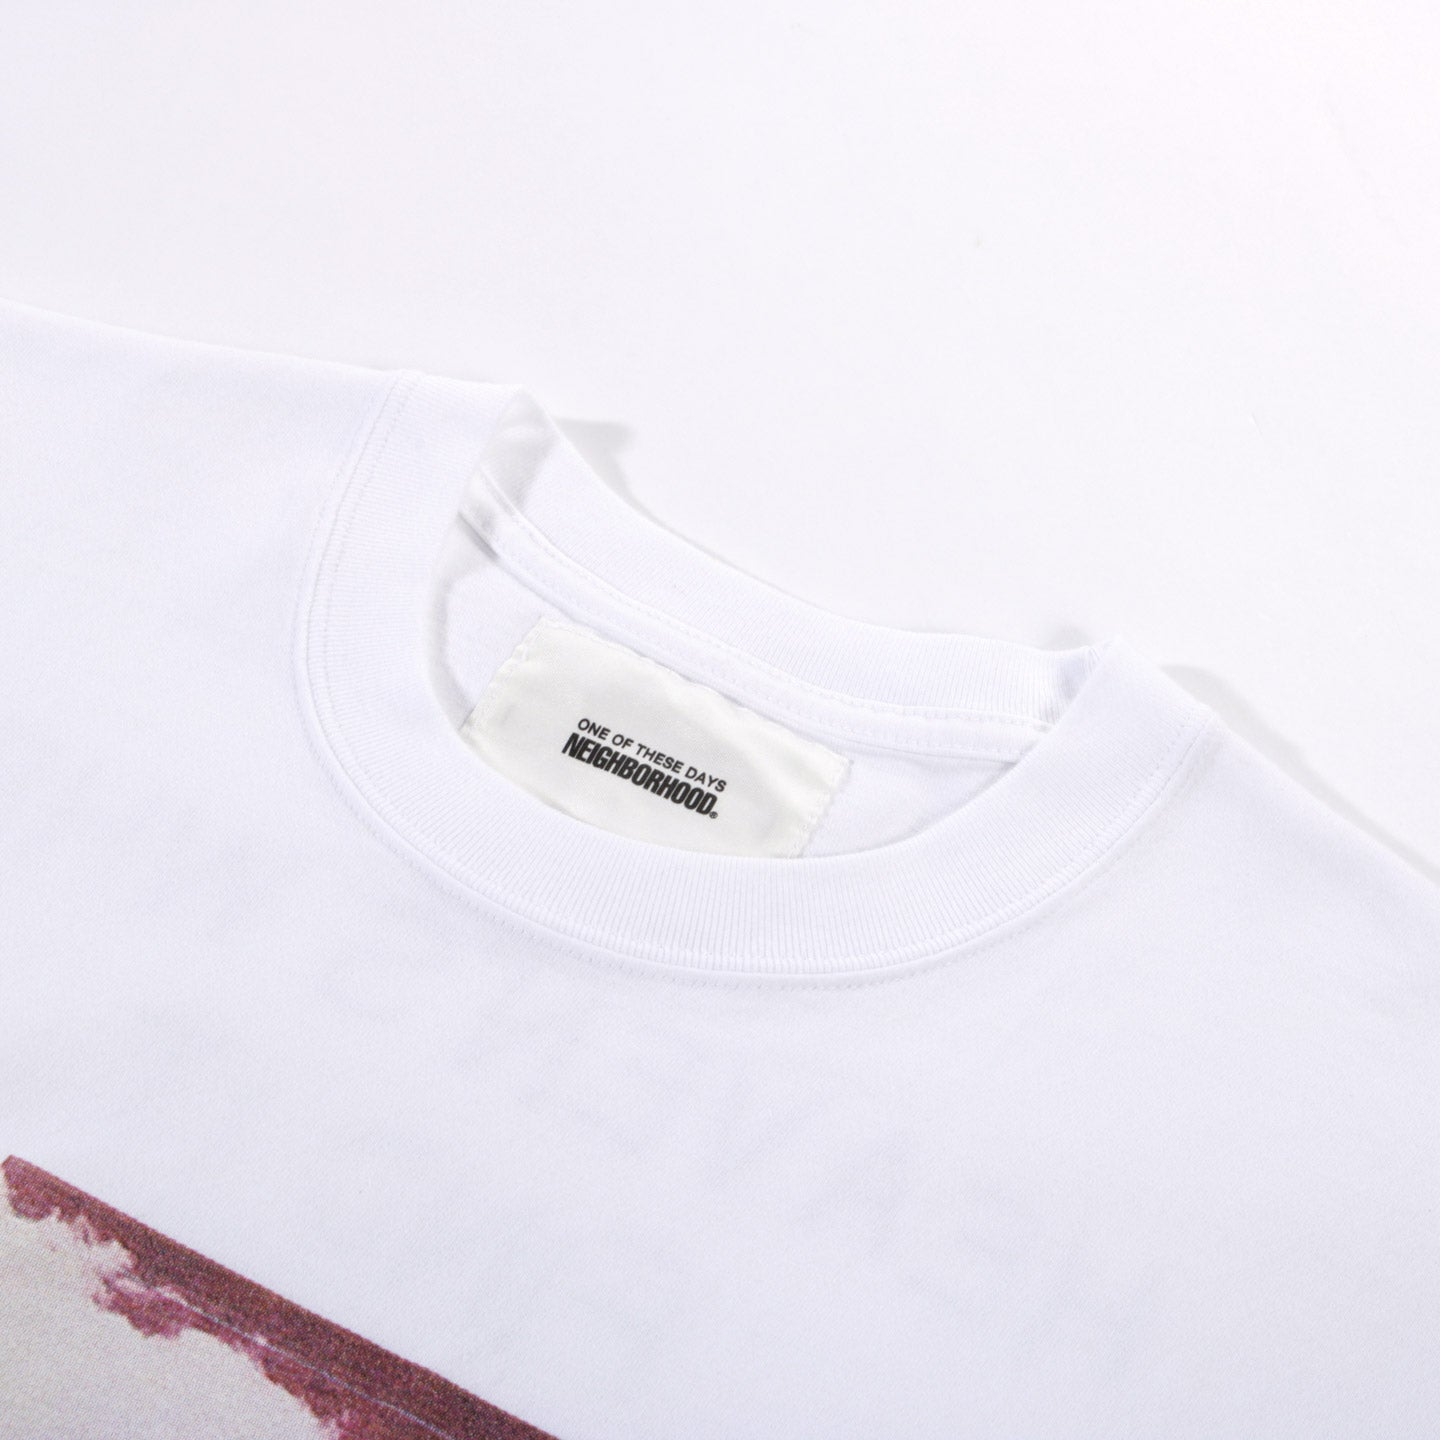 NEIGHBORHOOD ONE OF THESE DAYS SS T-SHIRT 1 WHITE